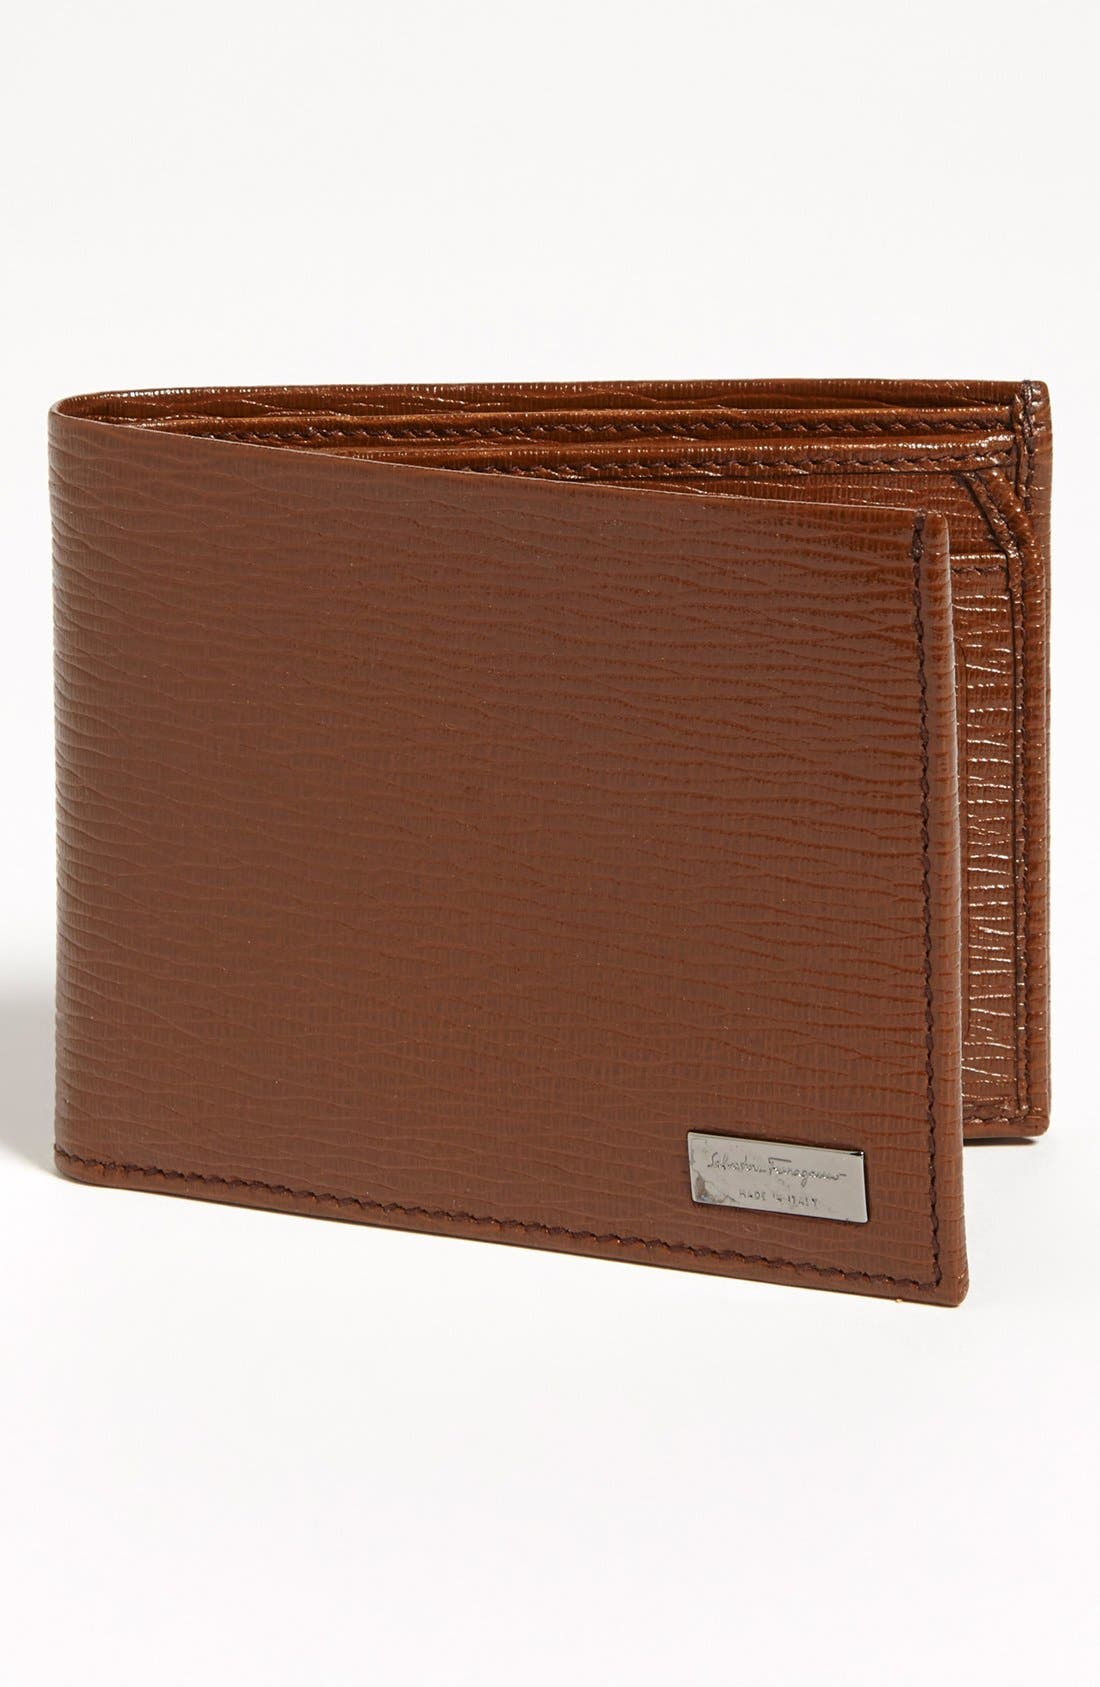 Alternate Image 1 Selected - Salvatore Ferragamo 'Revival' Wallet